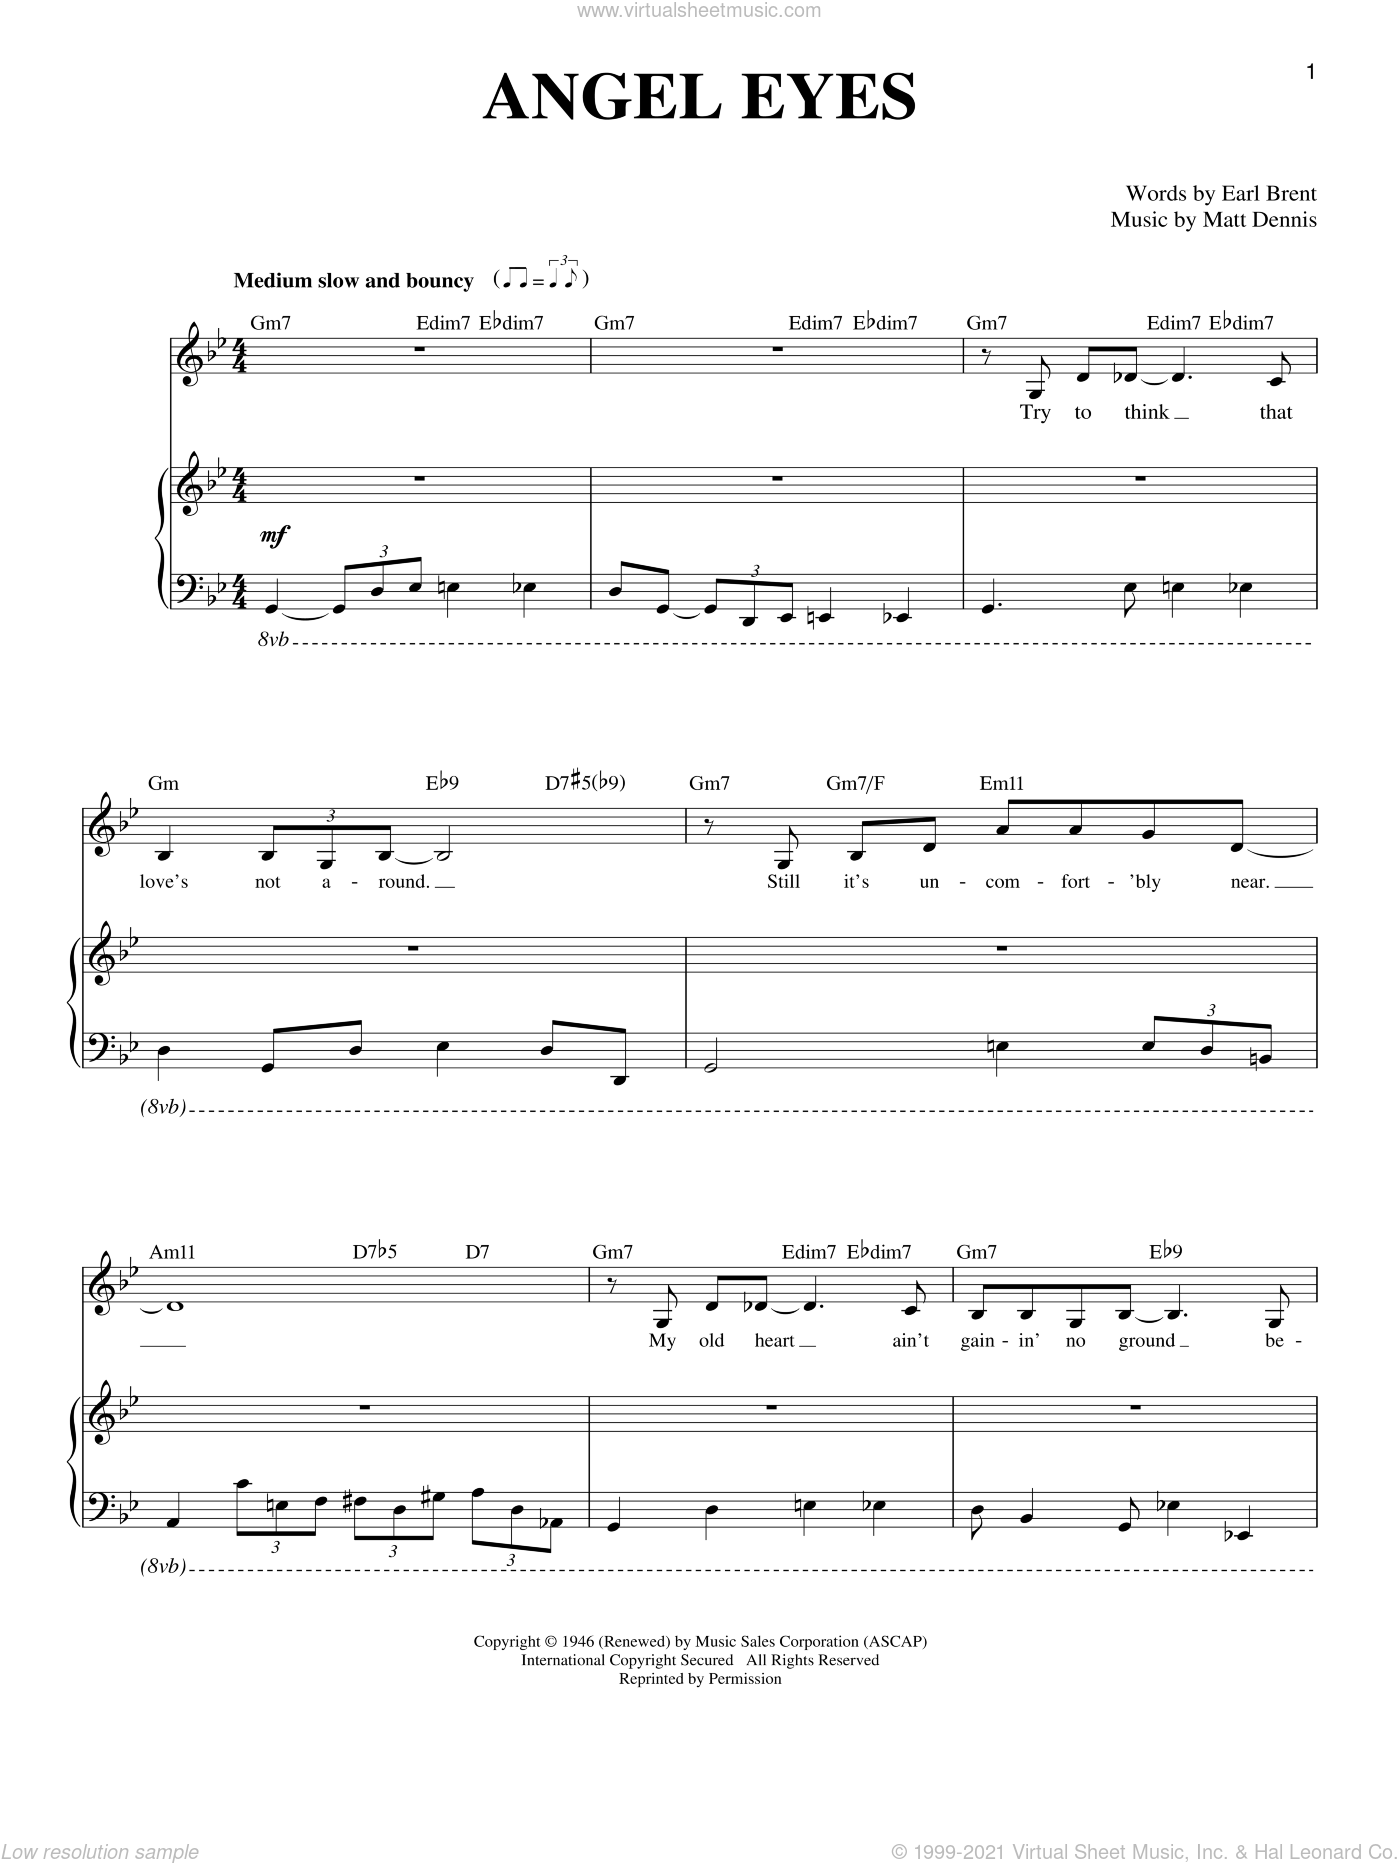 Angel Eyes sheet music for voice and piano by Earl Brent